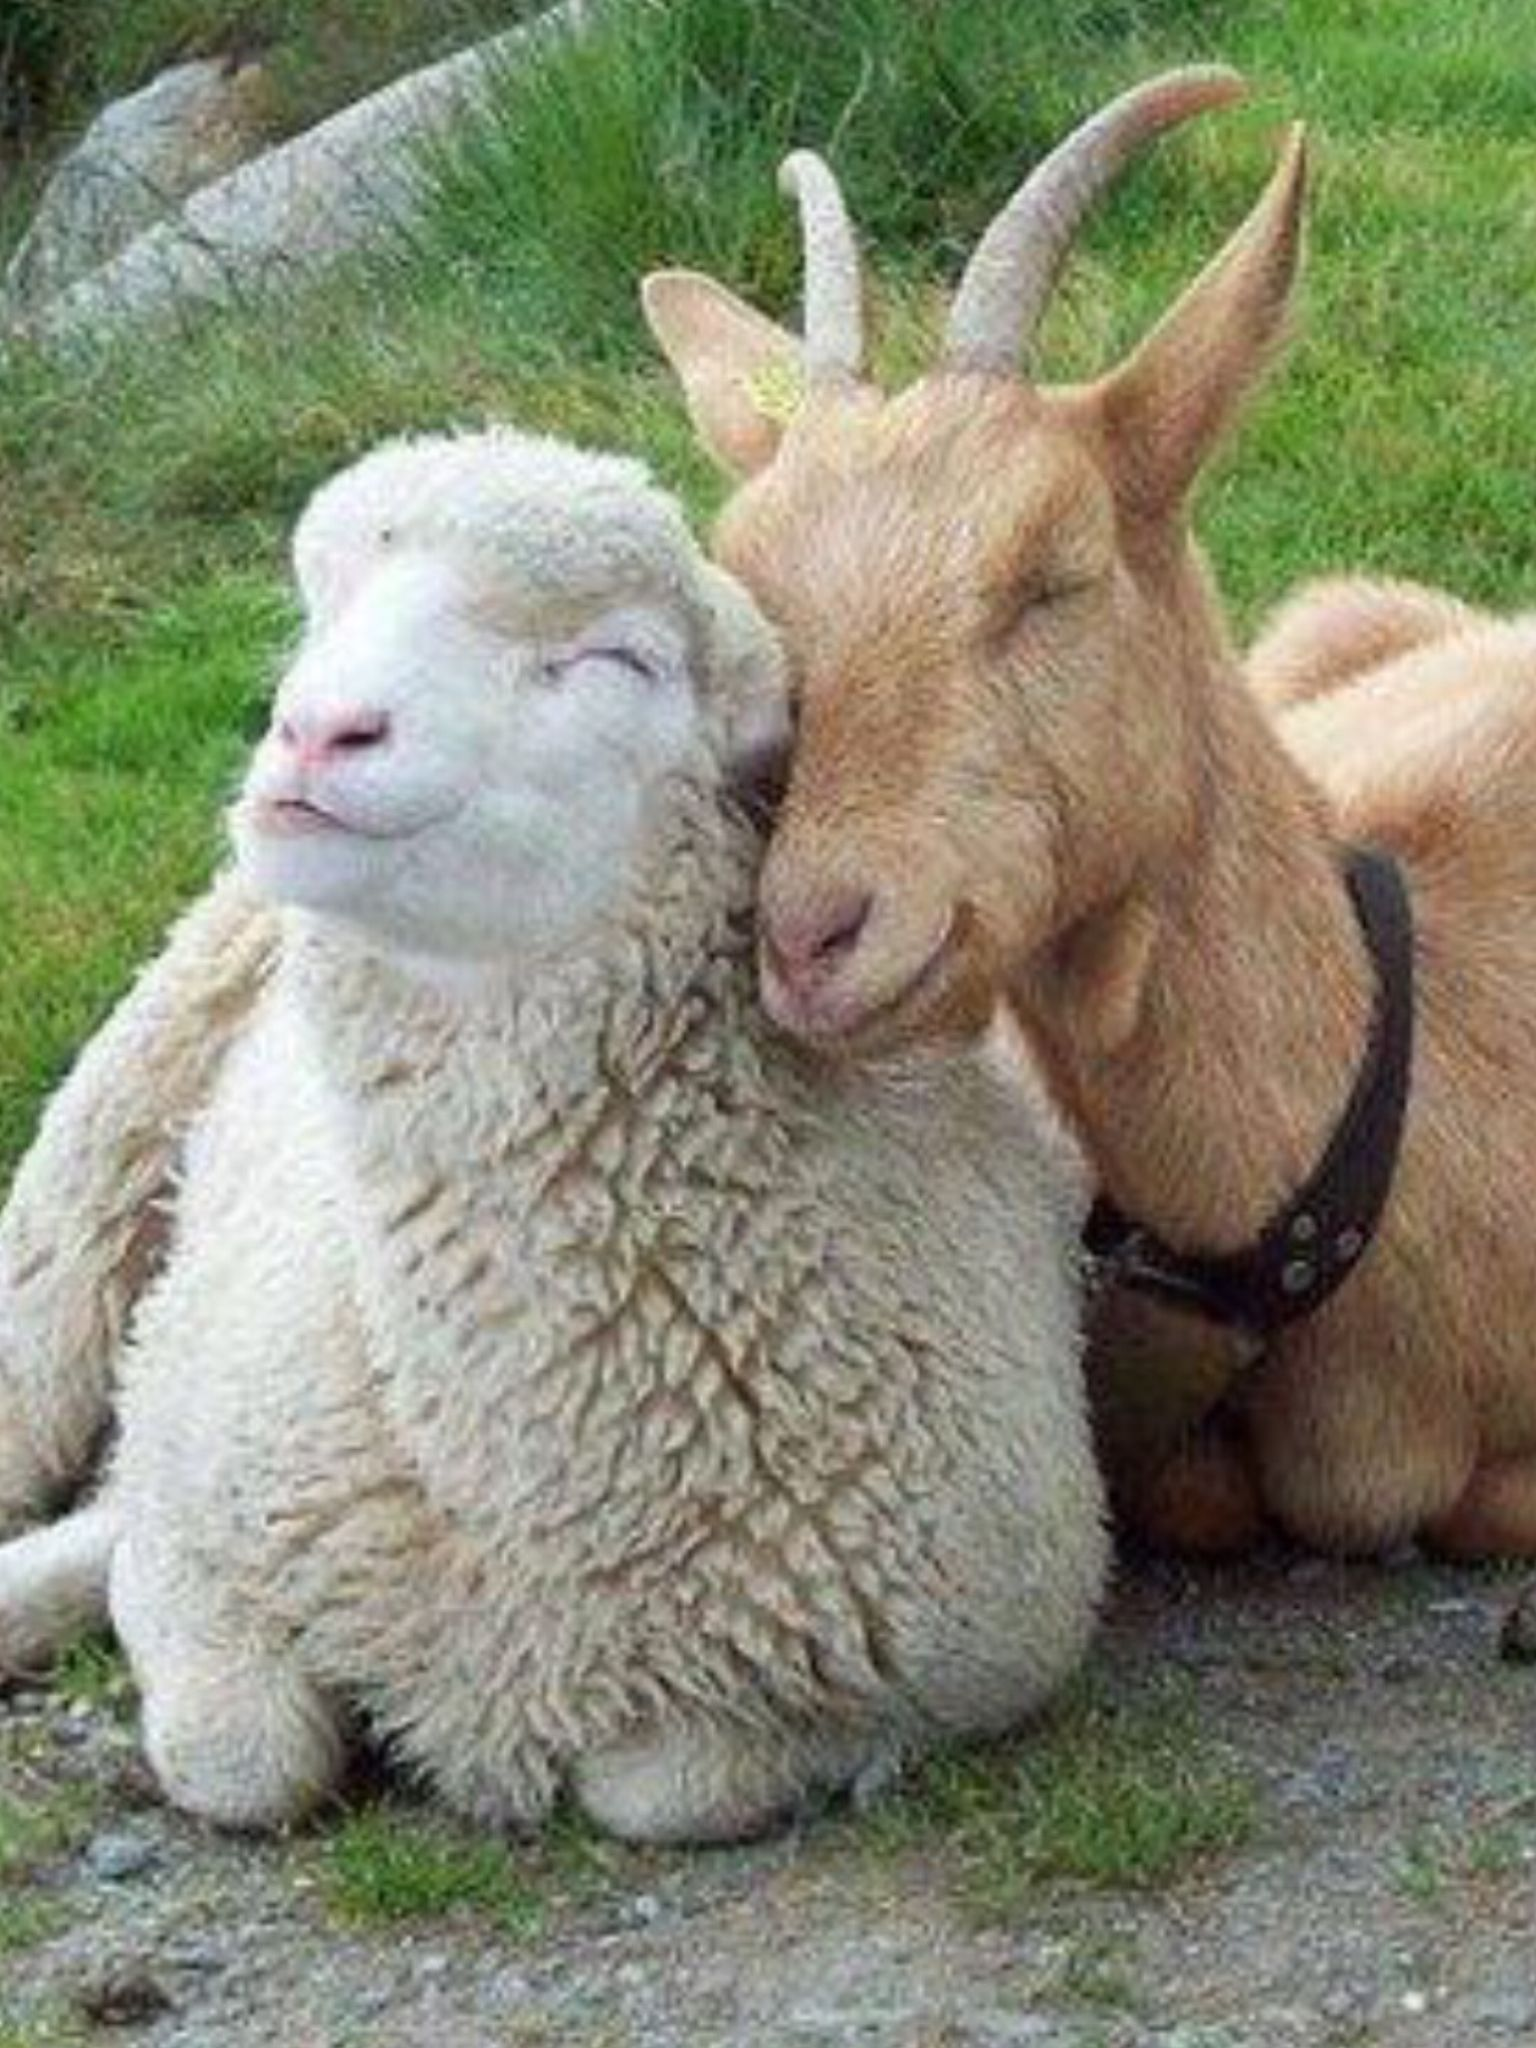 Image of: Deadly Farm Animal Sounds For Children Animal Sounds Videos Real Animal Sounds Videos Farm Animals Sound Pinterest Farm Animal Sounds For Children Animal Sounds Videos Real Animal